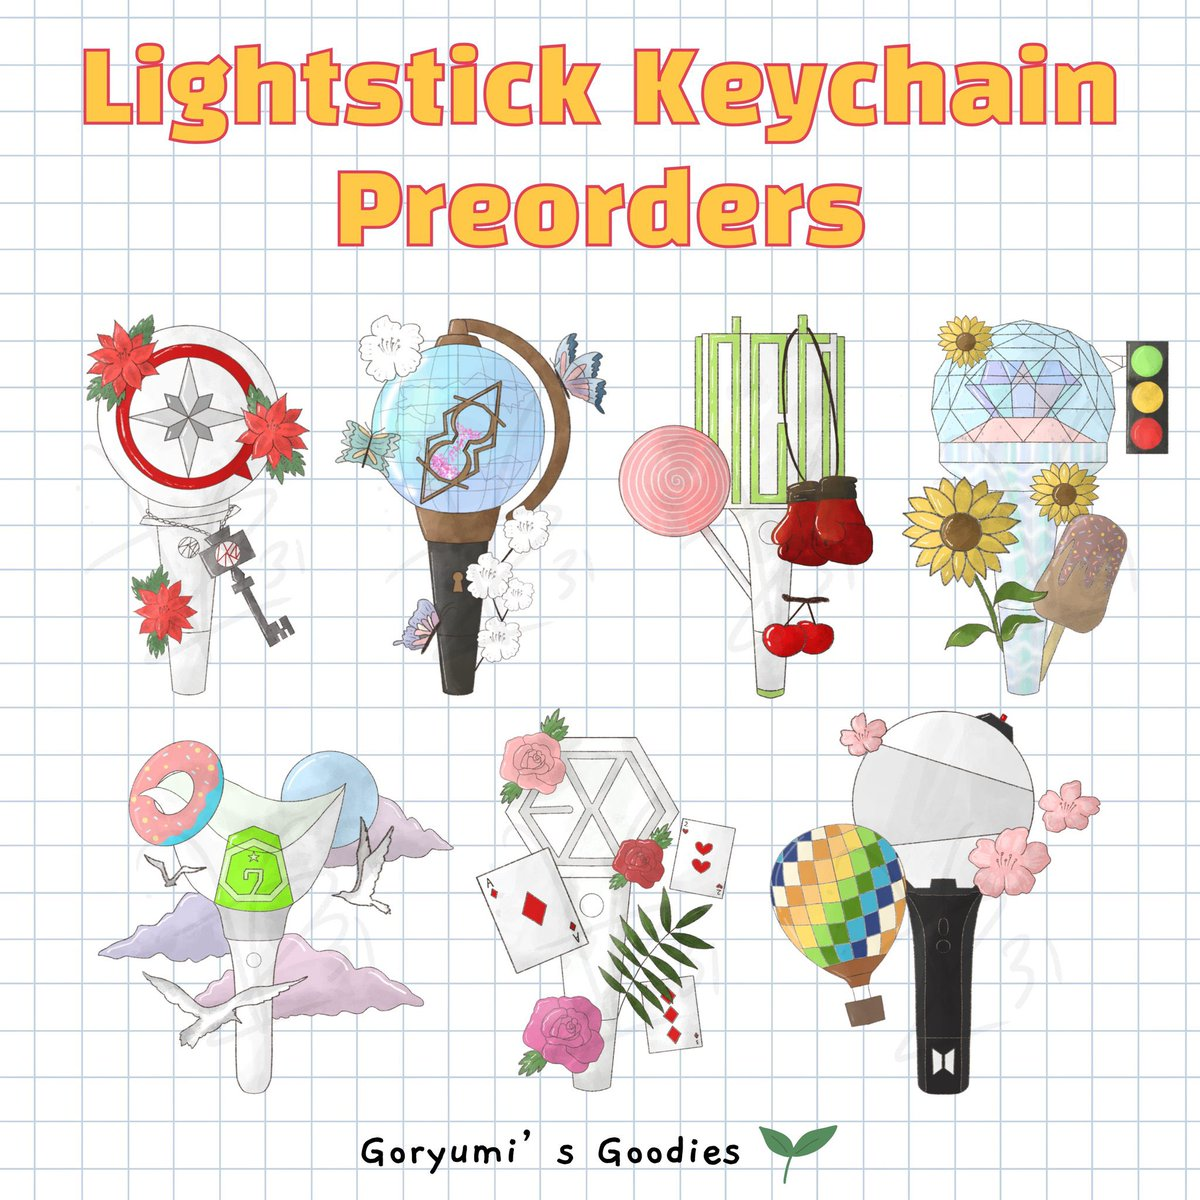 [CAN 🇨🇦 GO] @Goryumi Kpop Lightstick Keychain ; Please RT!  🎏 $6USD/8CAD each 🎏 $40USD/$50CAD per set of 7 🎏 Shipping to CANADA/USA 🎏 Vancouver pickups available 🎏 Needs min 5-10 joiners to proceed! 🎏 CLOSES JAN 20TH 12PM PST